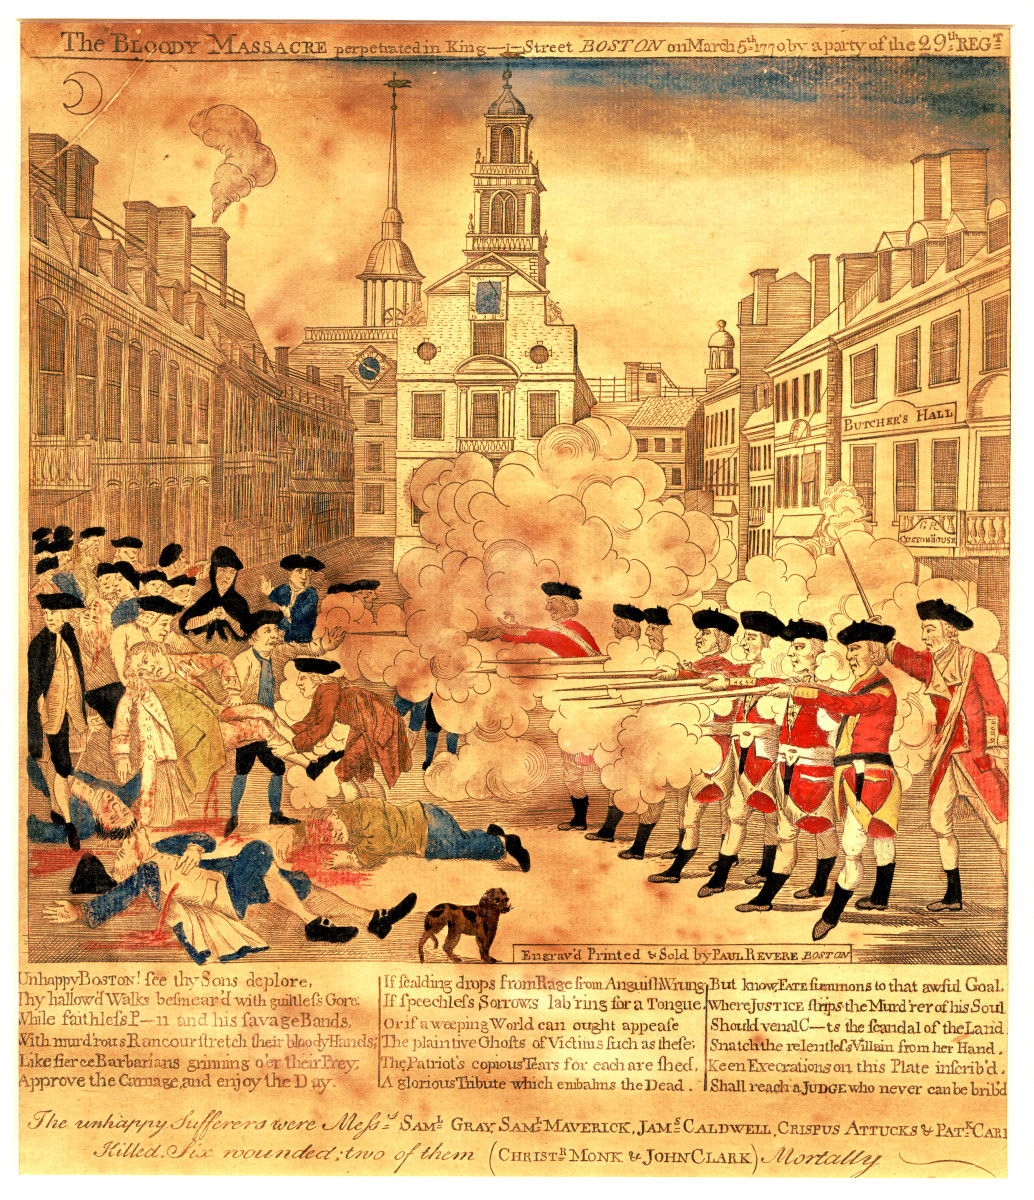 """An engraving by Paul Revere titled """"The Bloody Massacre Perpetrated in King Street Boston on March 5th, 1770."""""""